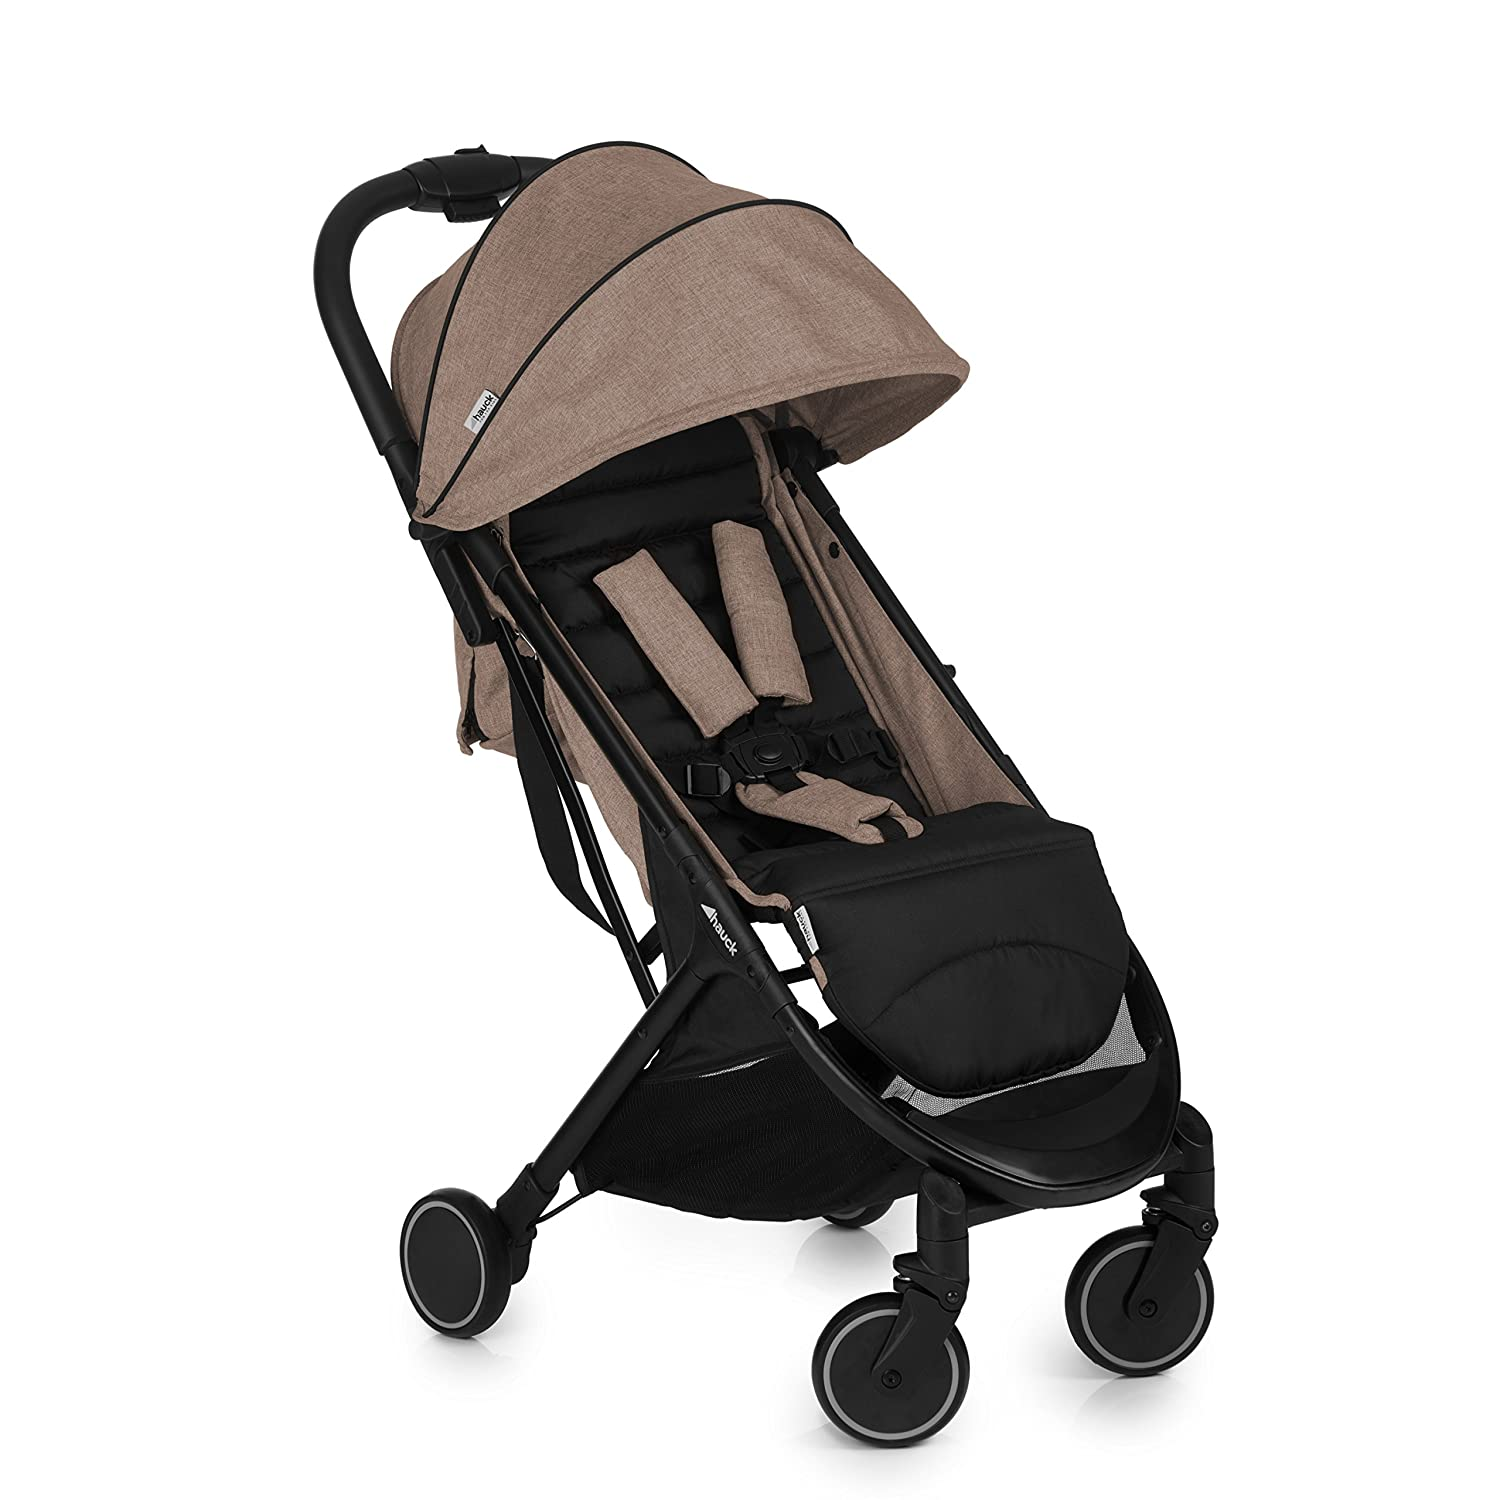 Hauck Swift One Hand Compact Fold Pushchair with Raincover, Melange Beige/Black 160015